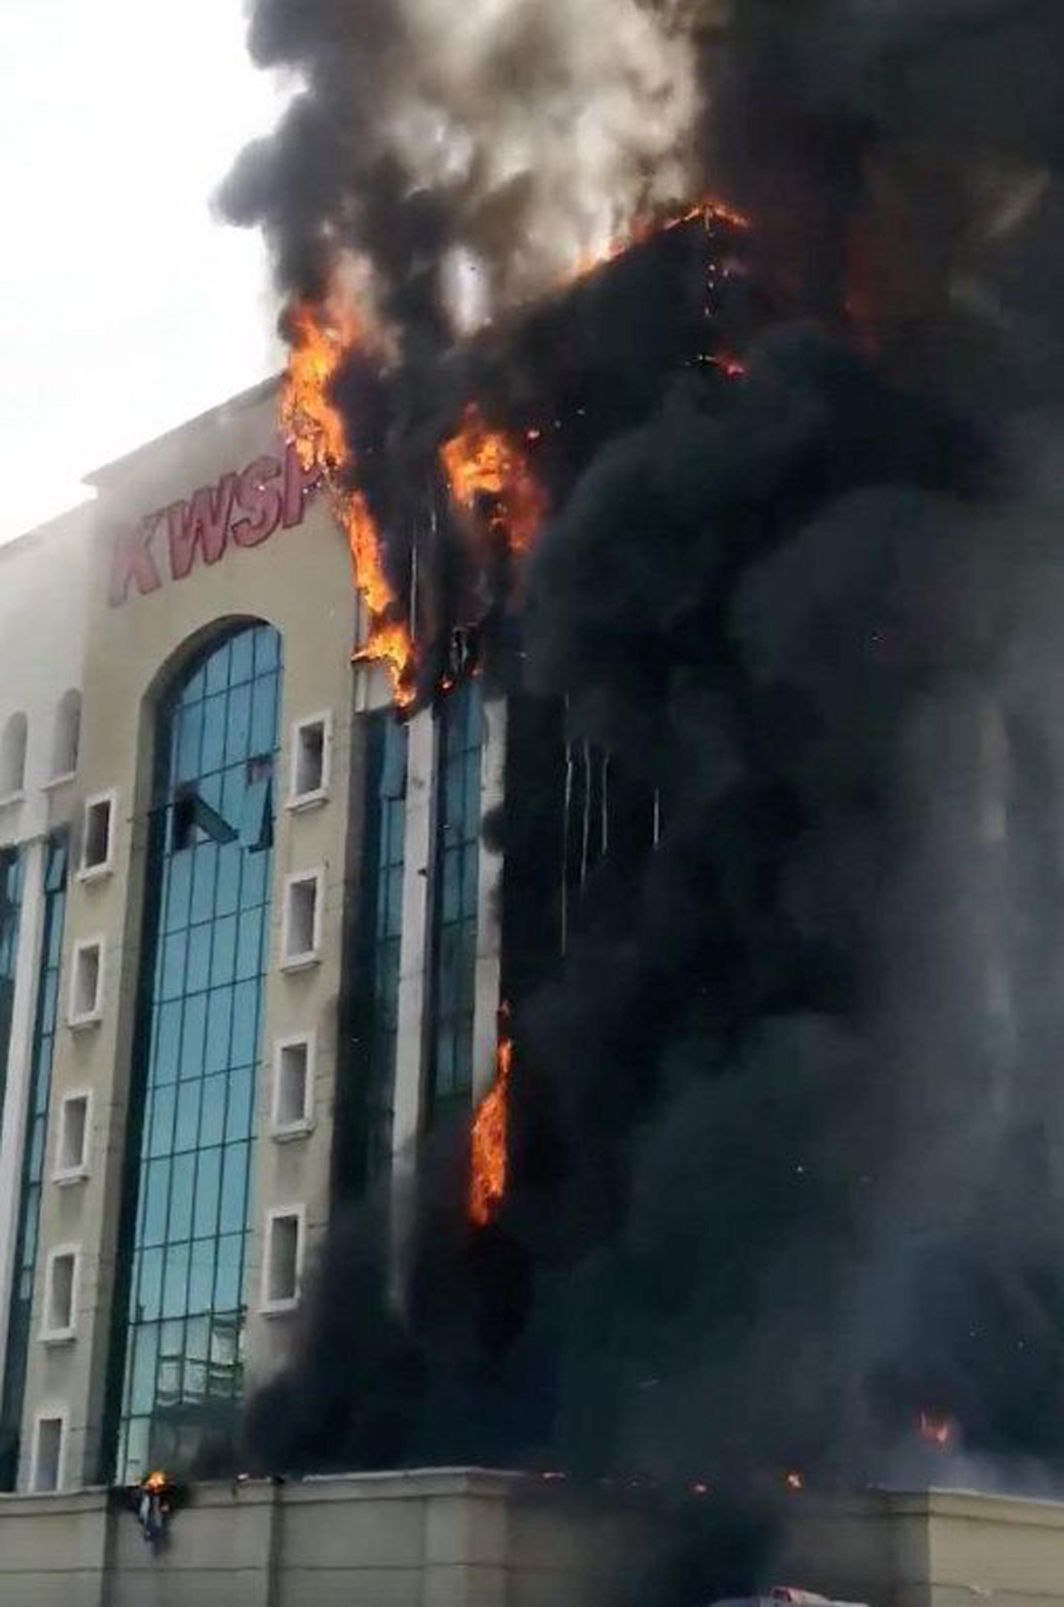 UP IN SMOKE: The pension fund building is seen on fire in Petaling Jaya, Malaysia, Reuters/UNI